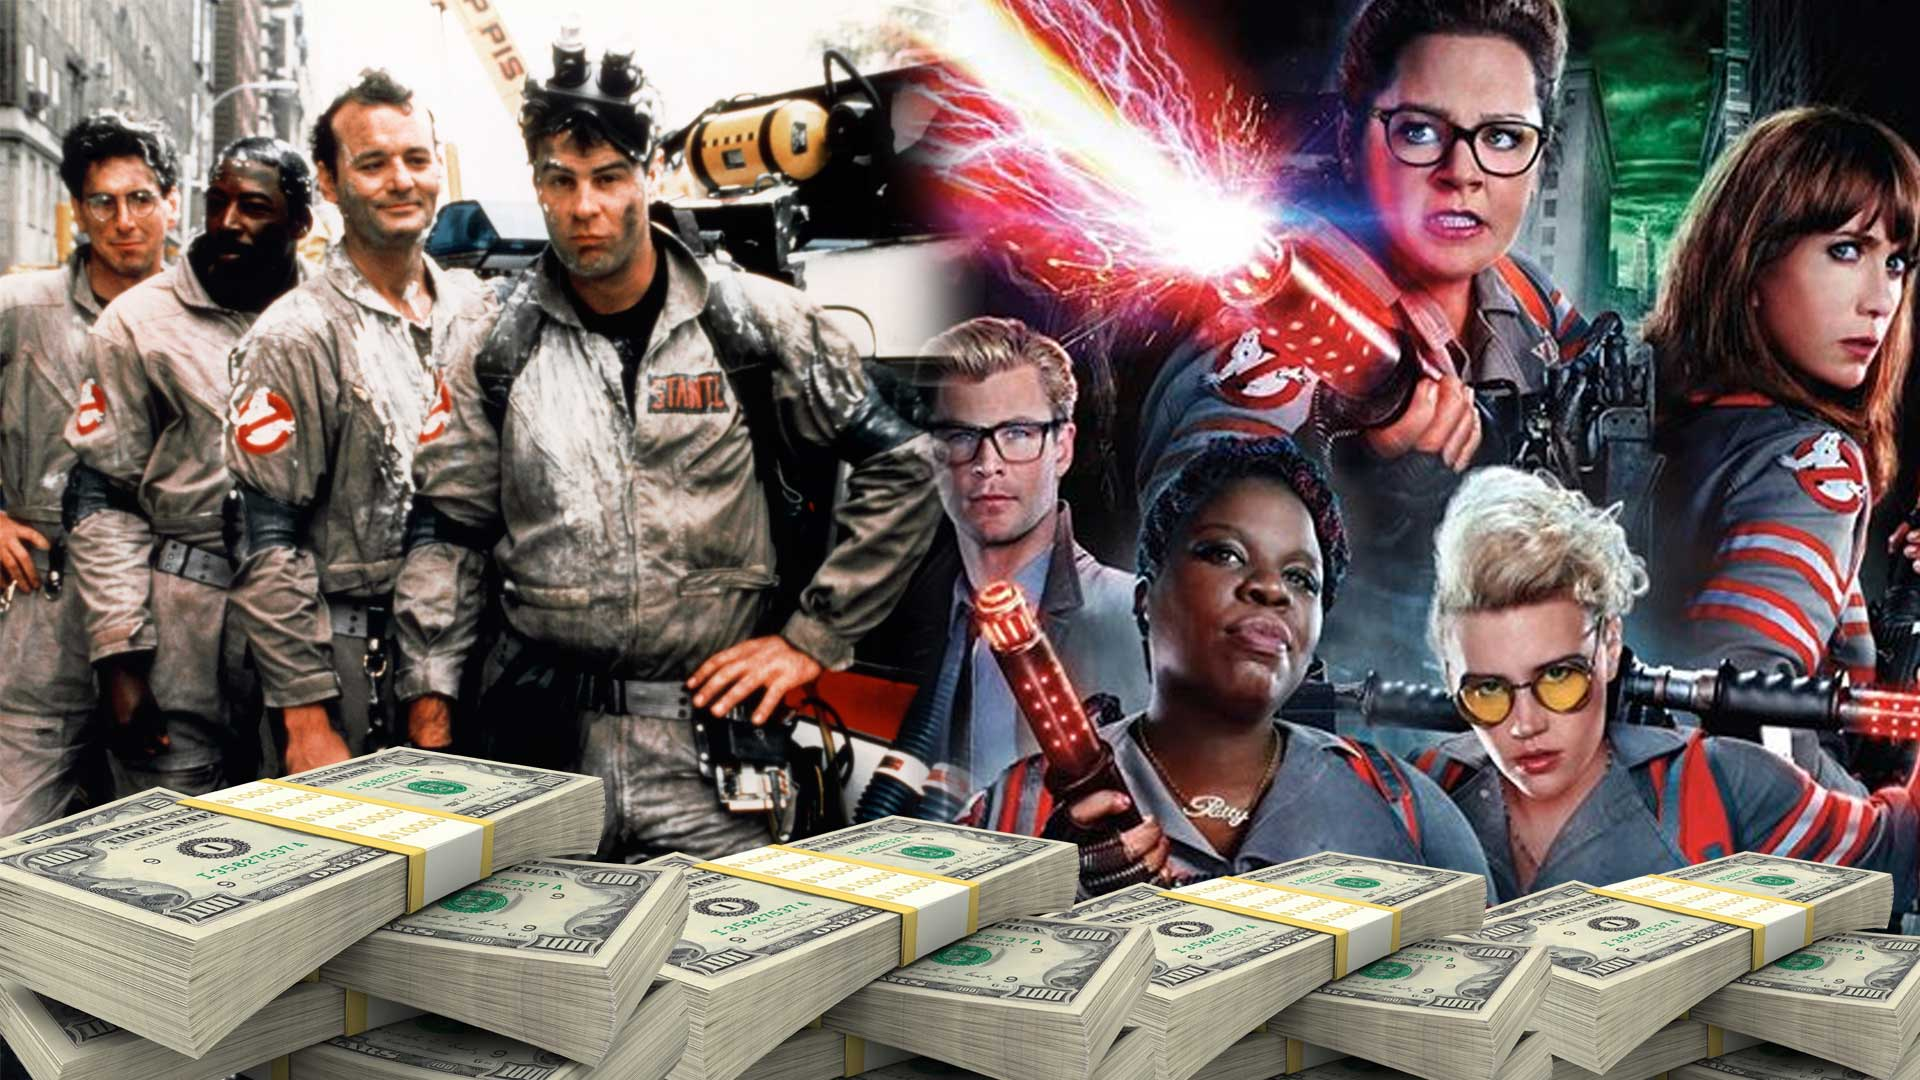 Ghostbusters 1984 Vs 2016 Marvellous Digital Agency Marvellous